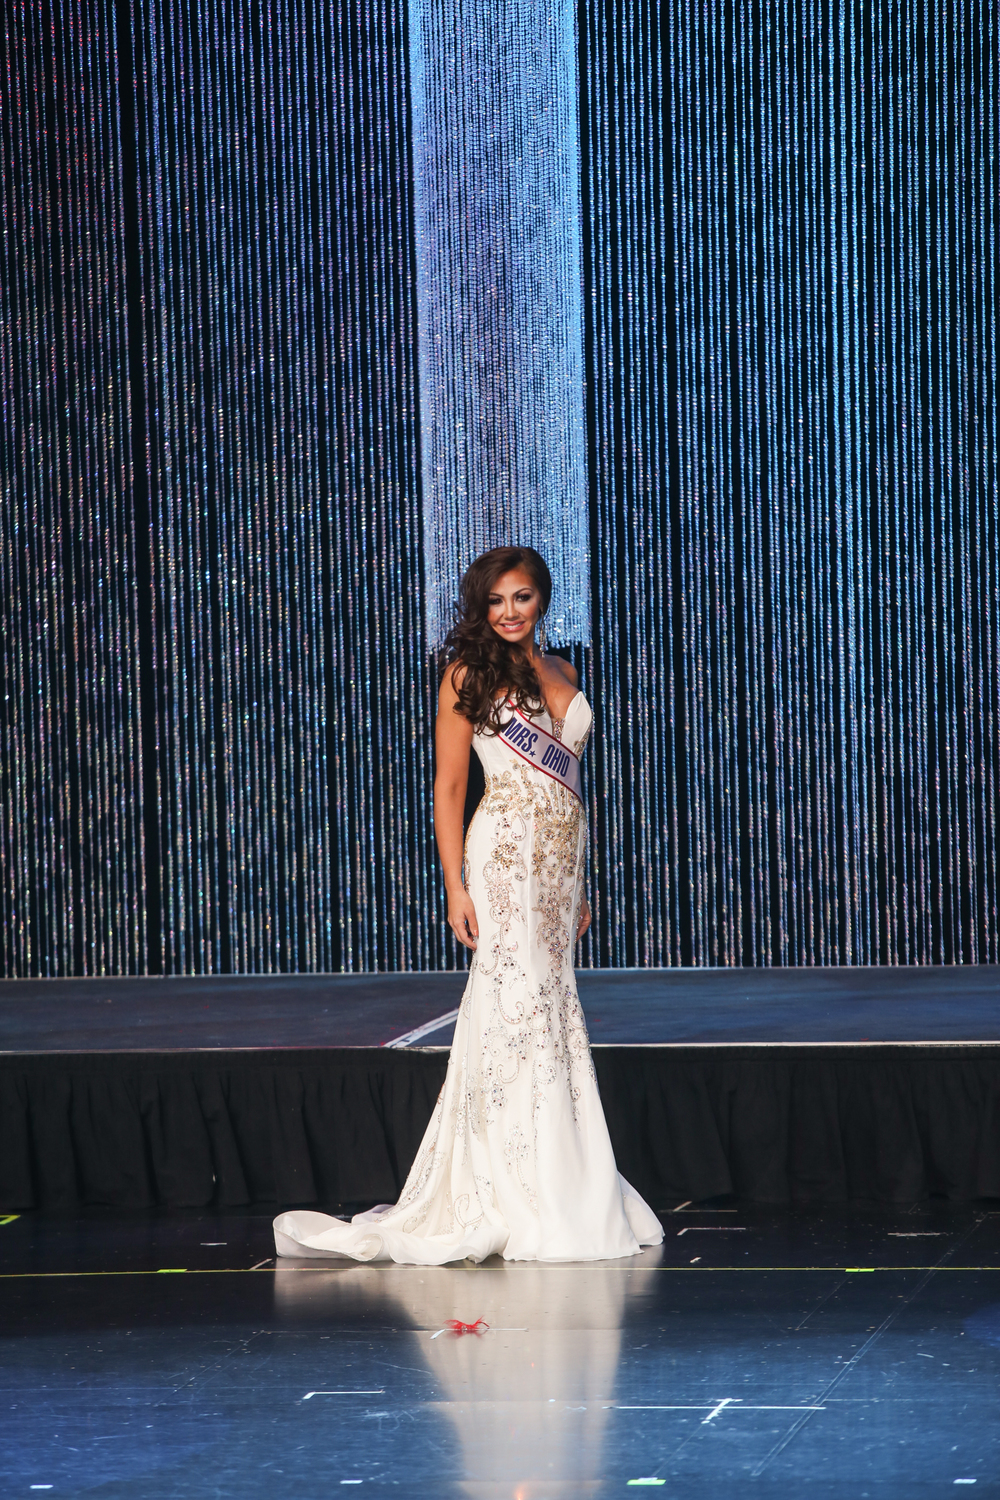 The Top 15 Evening Gown Competition at Mrs. America